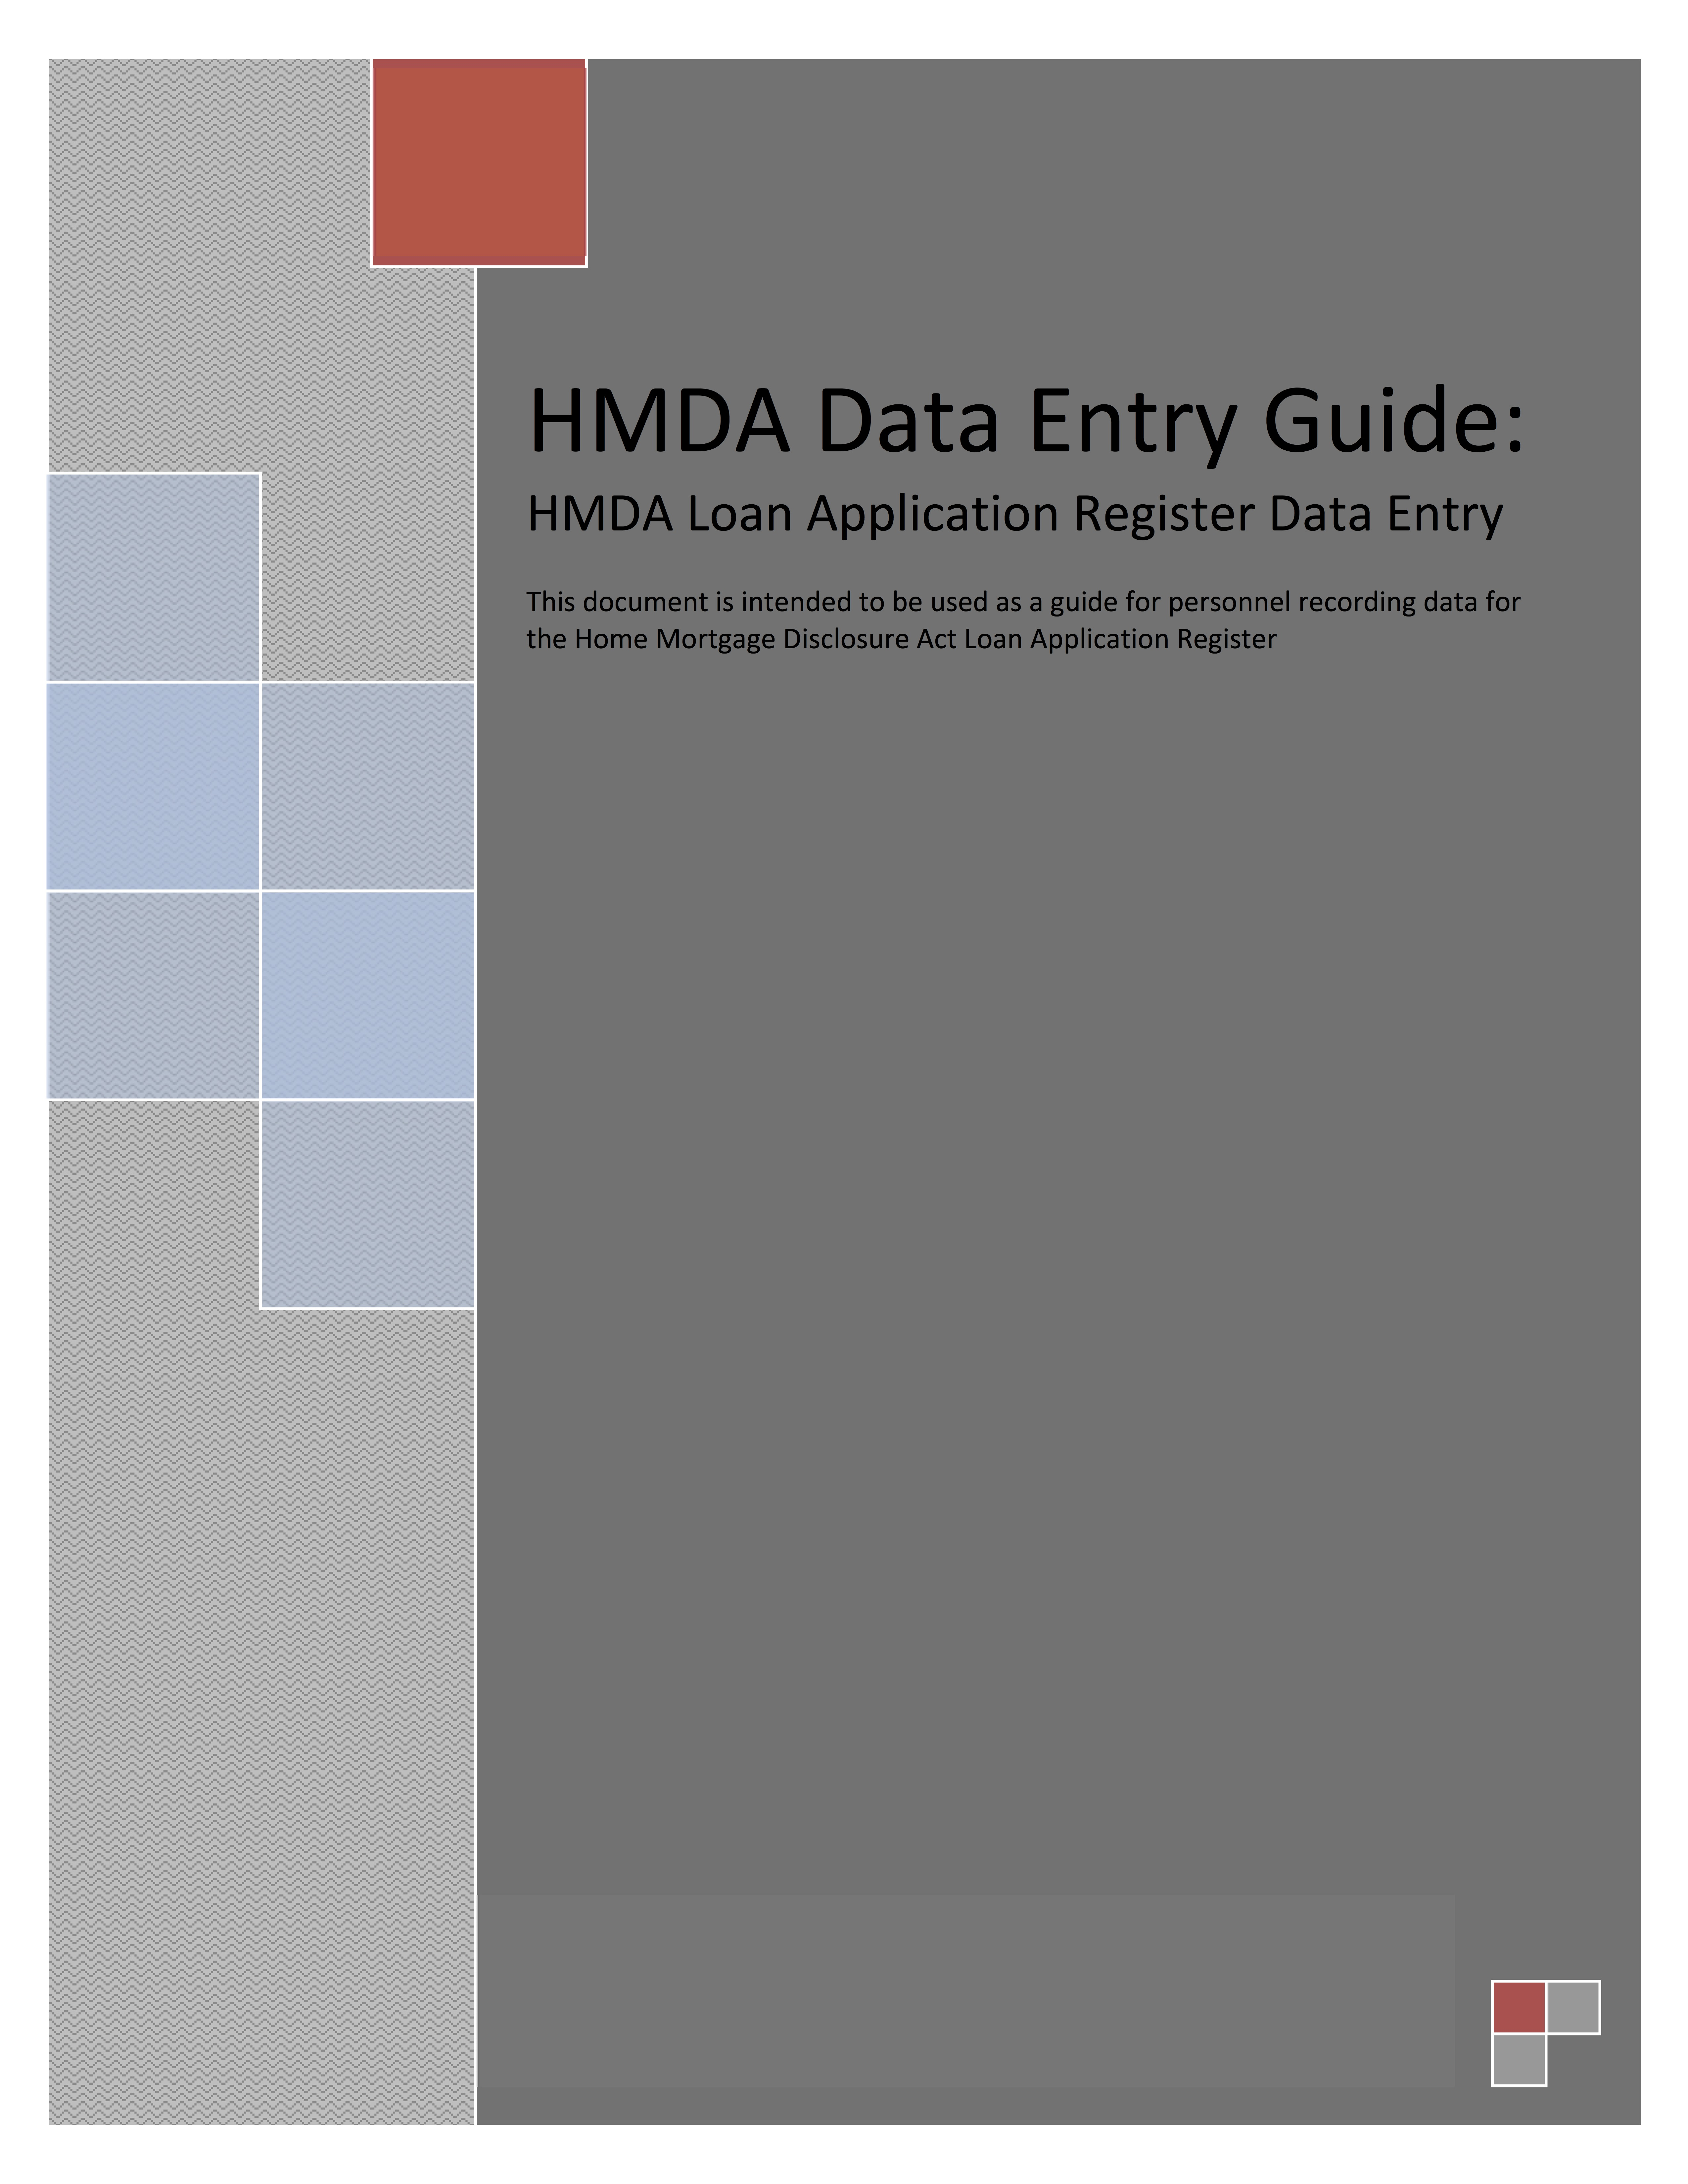 Cra And Hmda Data Entry Guides